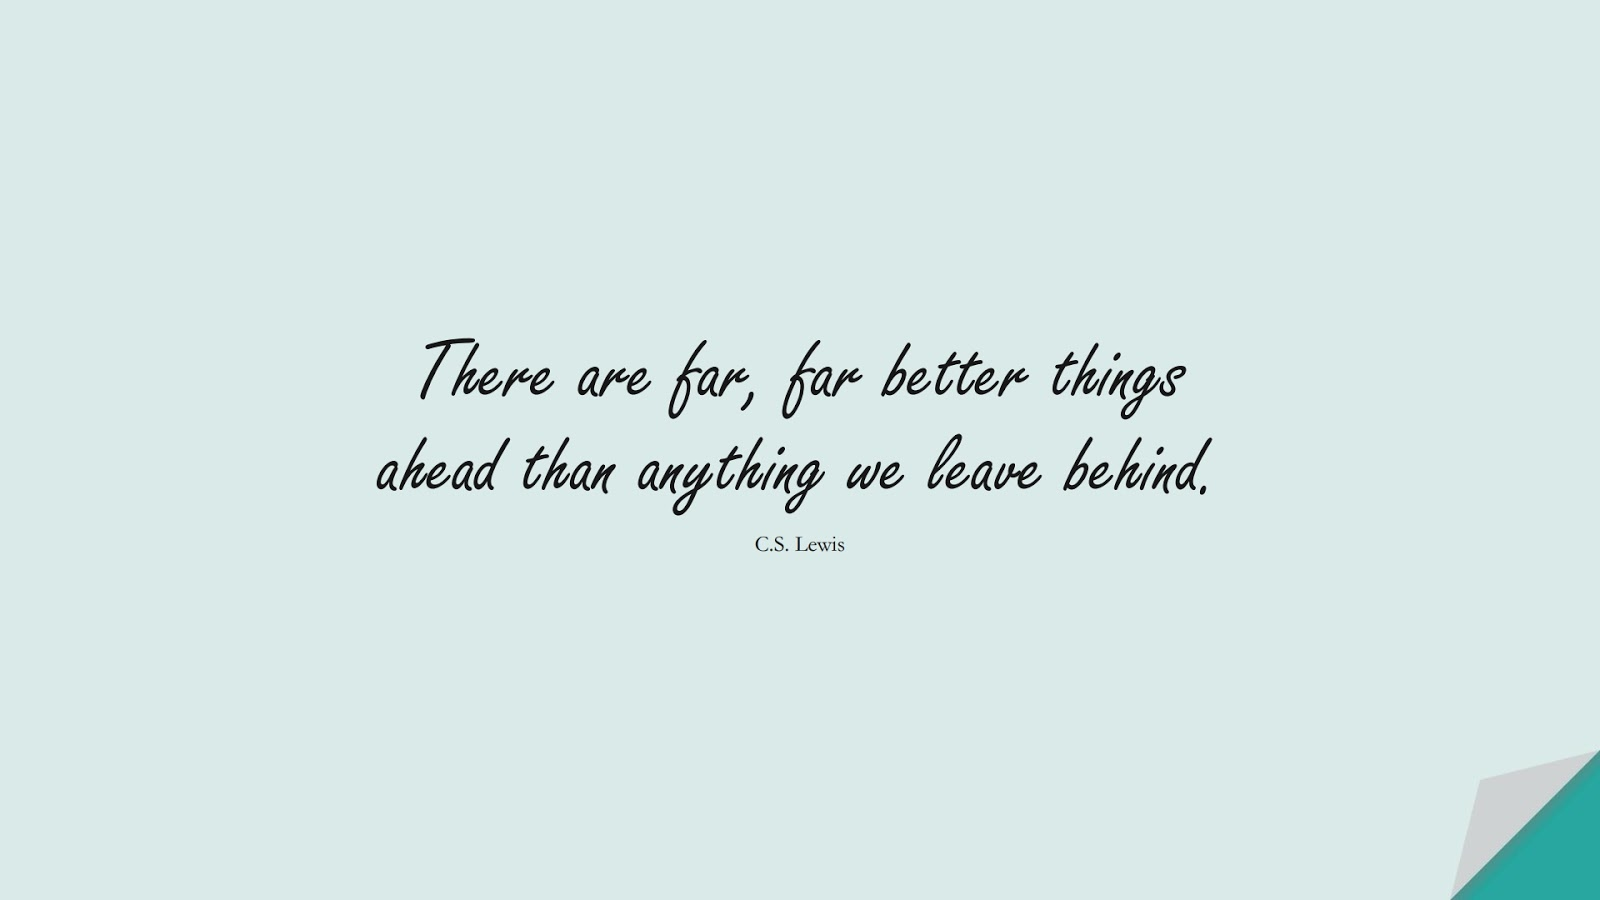 There are far, far better things ahead than anything we leave behind. (C.S. Lewis);  #PositiveQuotes